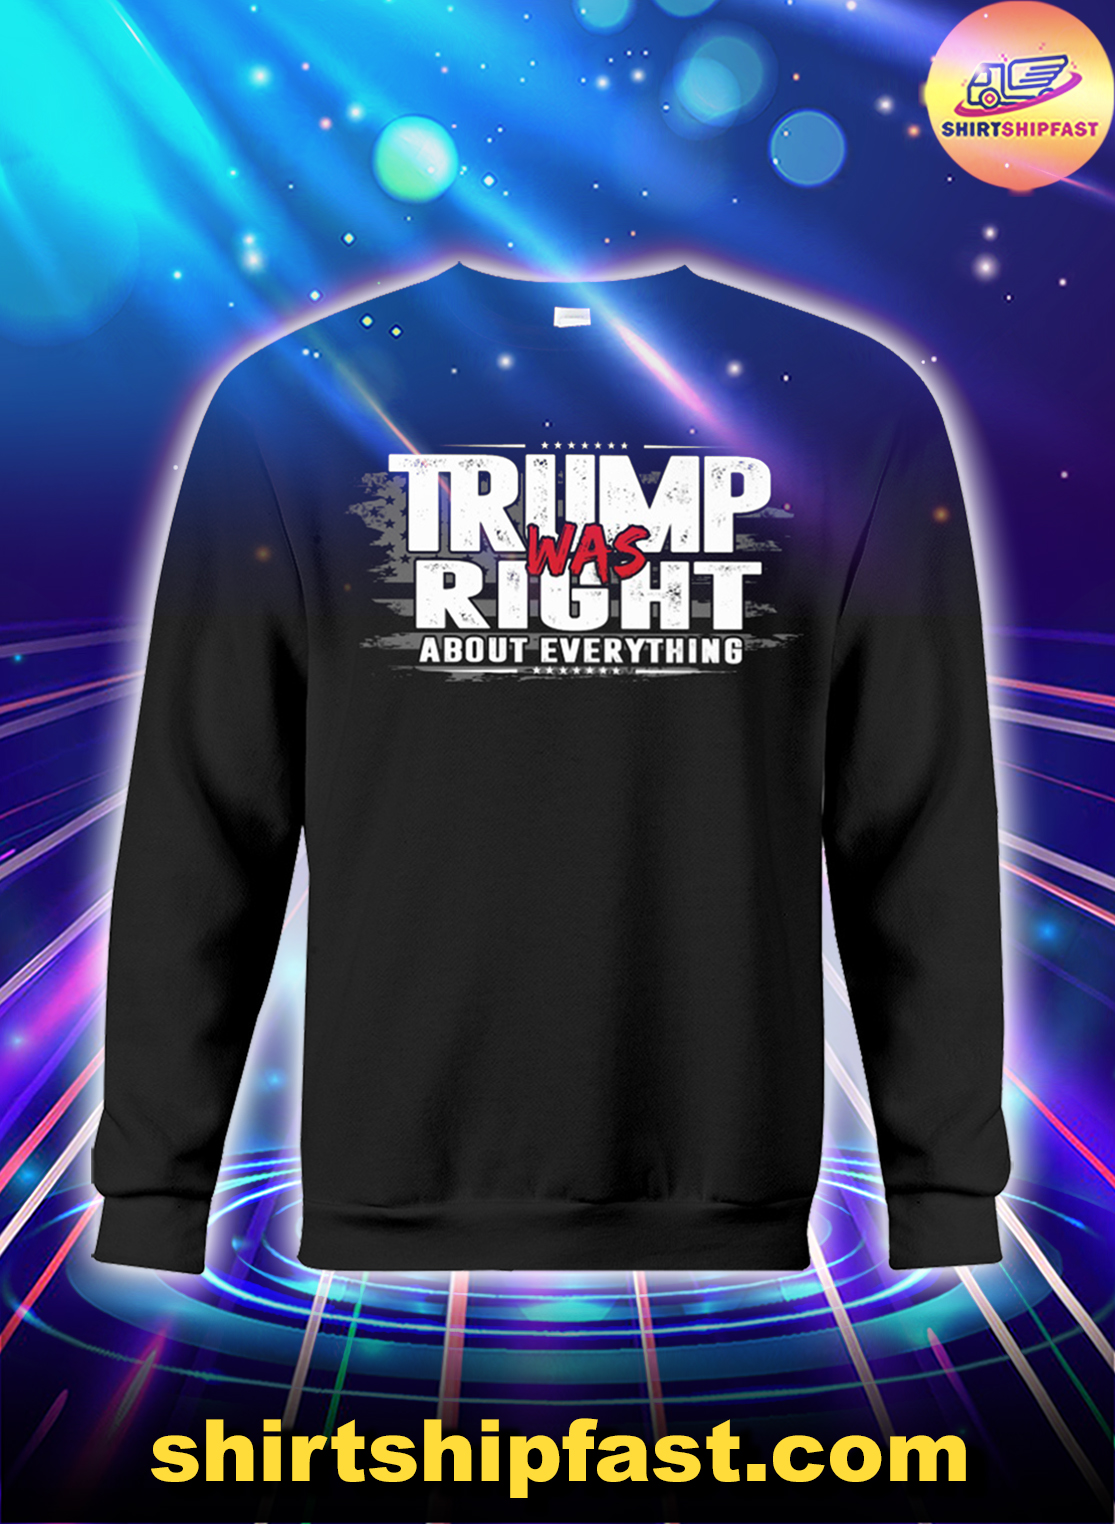 Trump was right about everything sweatshirt